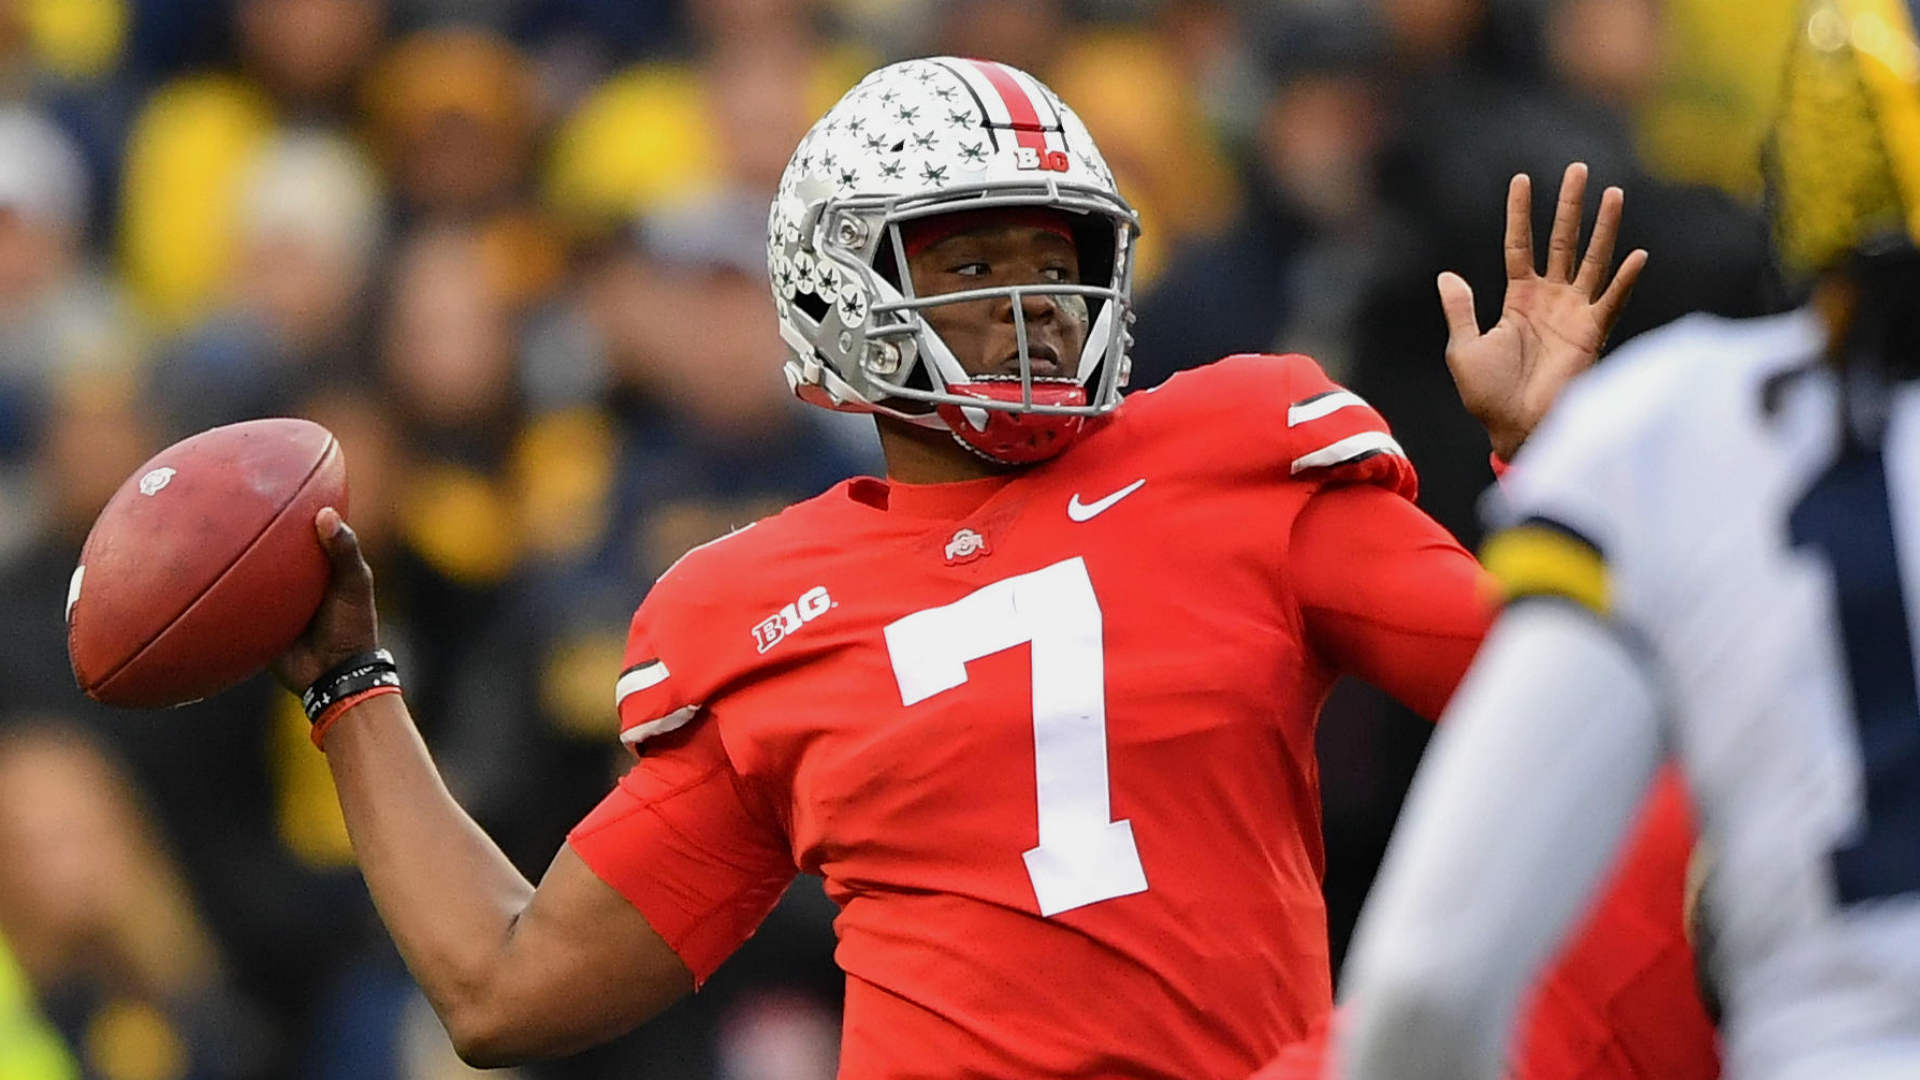 Joe Theismann gives Dwayne Haskins permission to wear No. 7 with Redskins